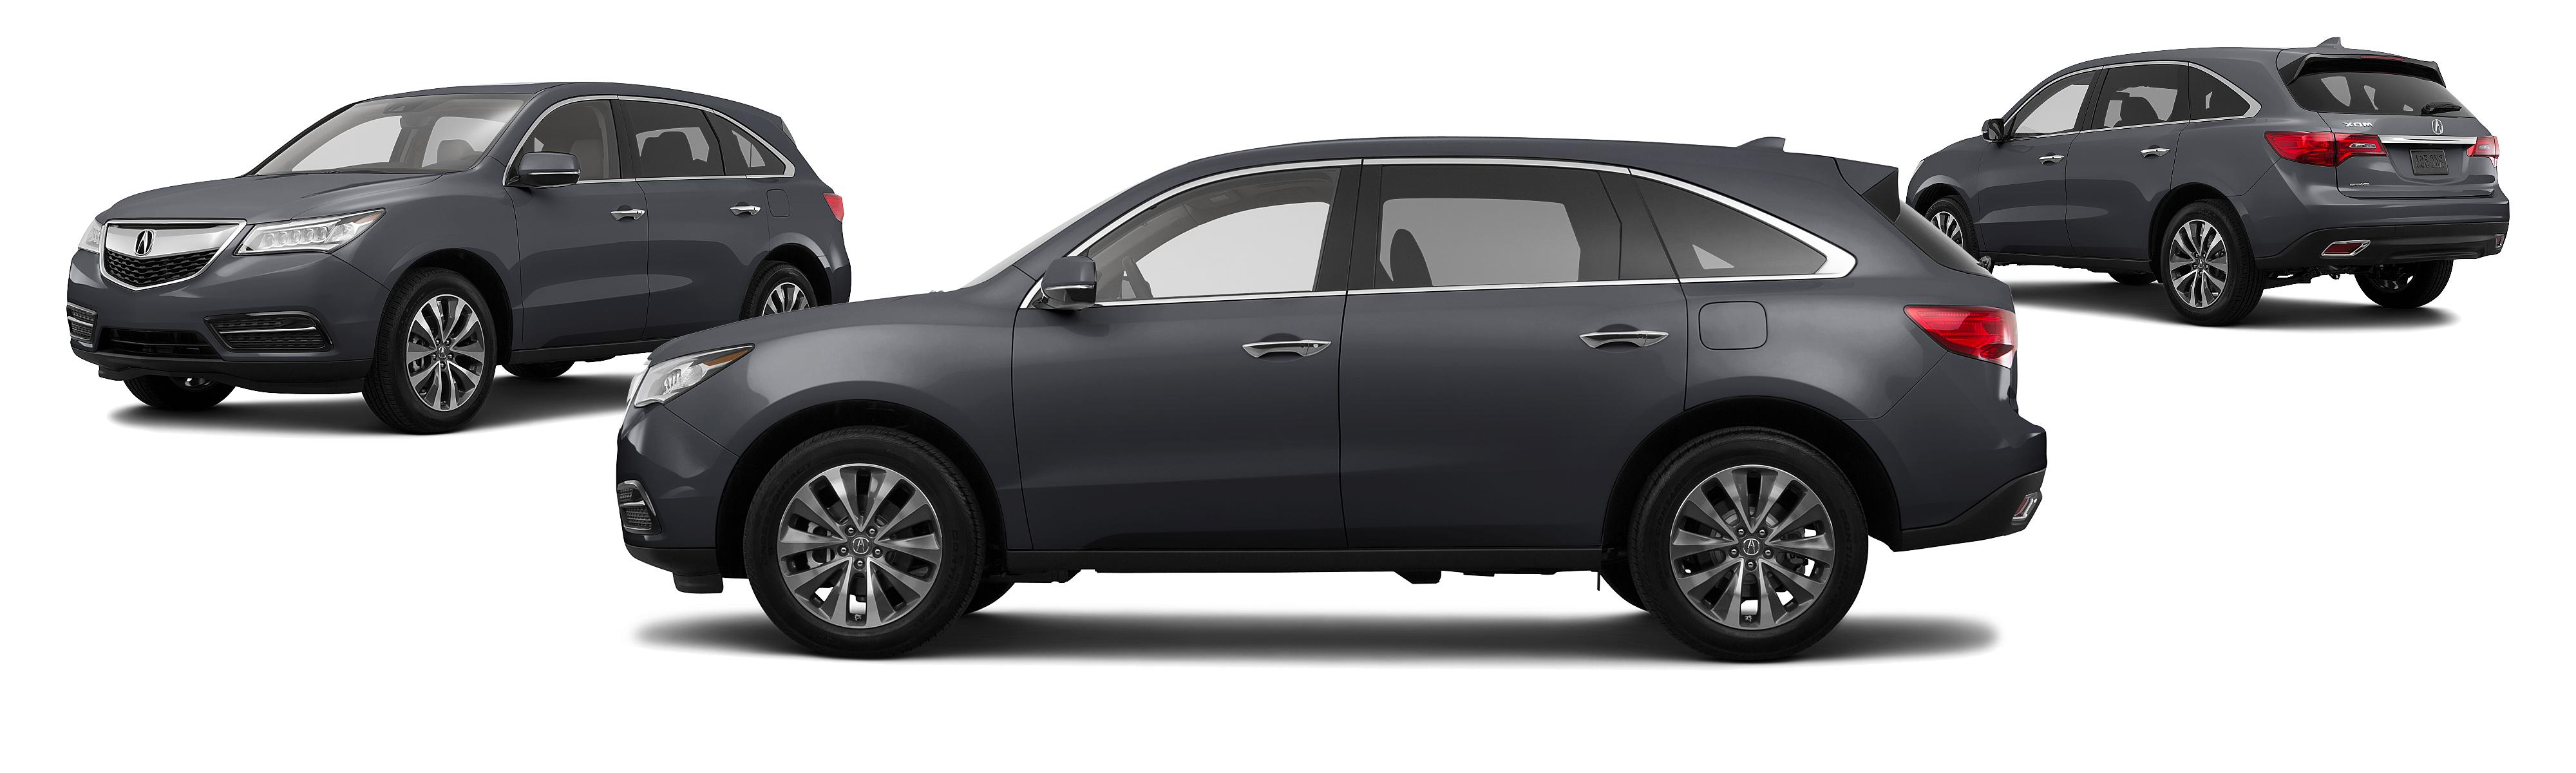 s ride guide buyers acura buyer justin pritchard mdx used cost